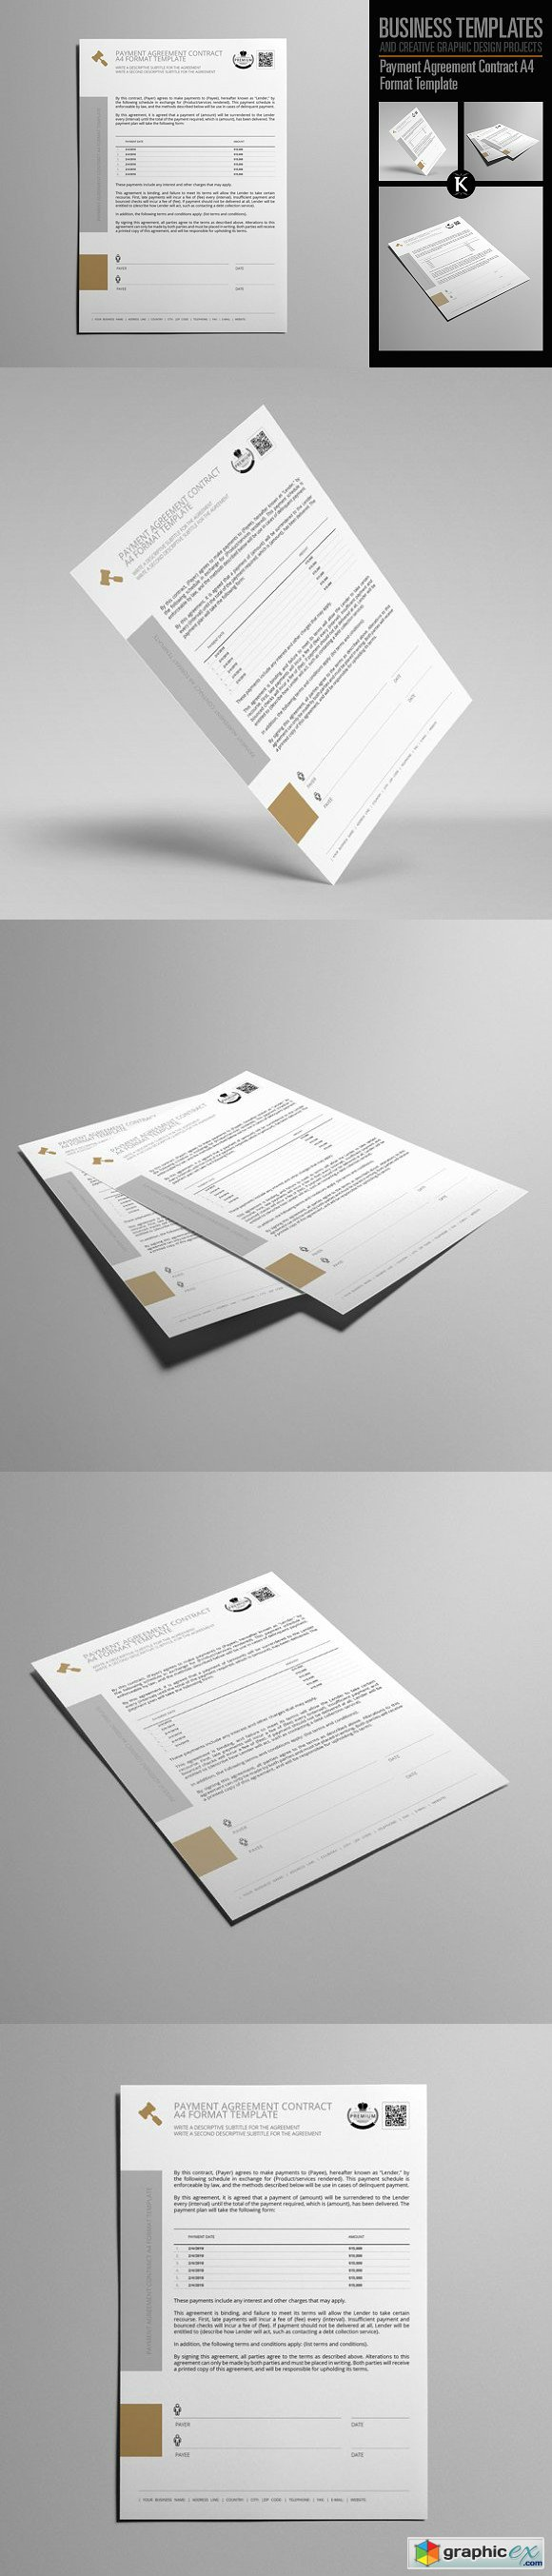 Payment Agreement Contract A4